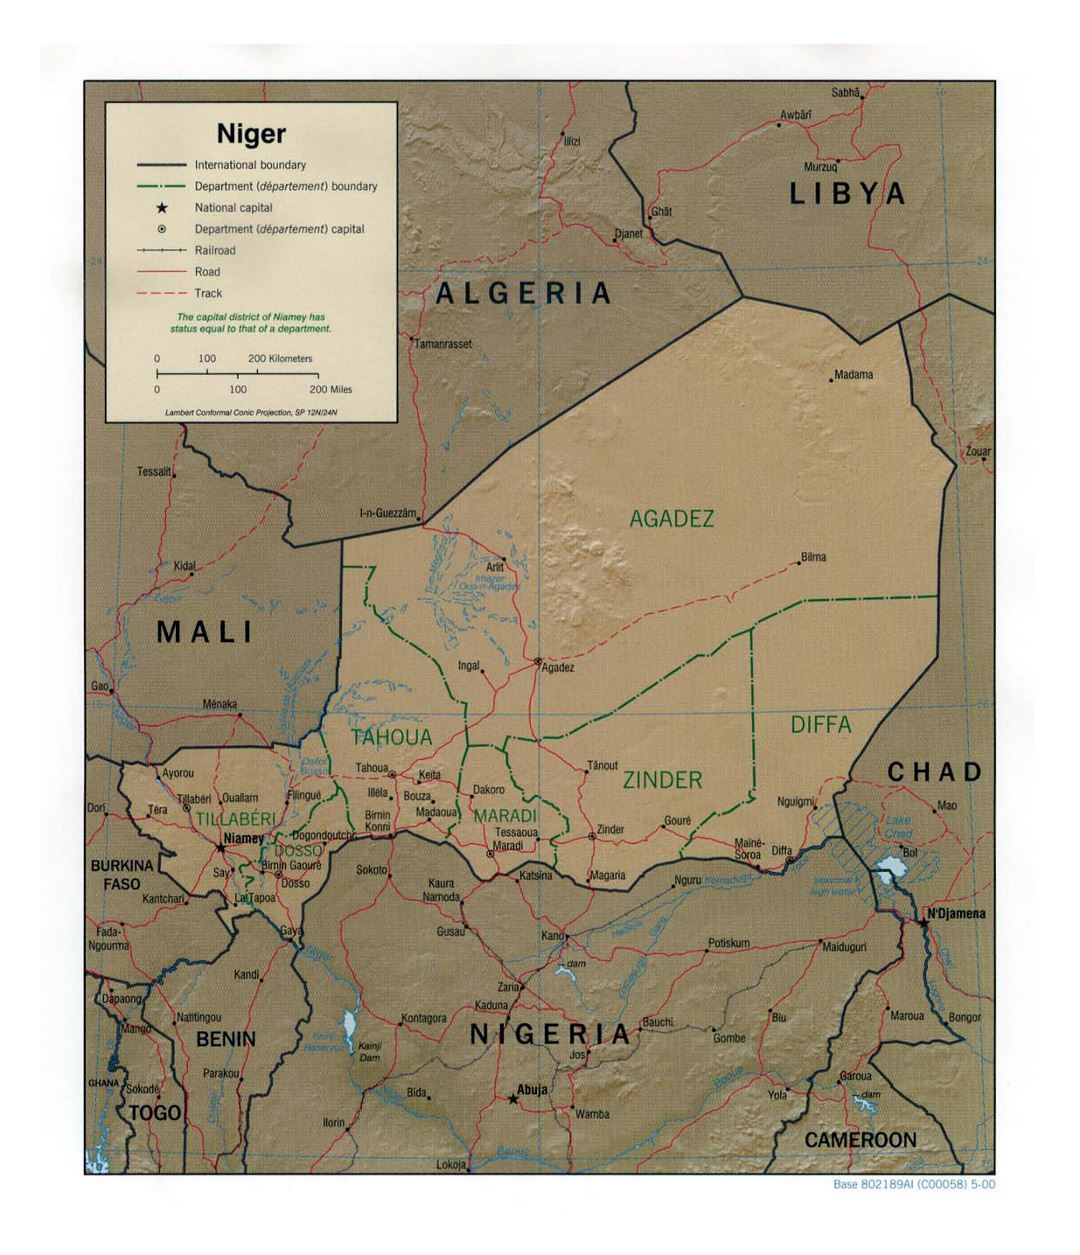 Detailed political and administrative map of Niger with relief, roads, railroads and major cities - 2000